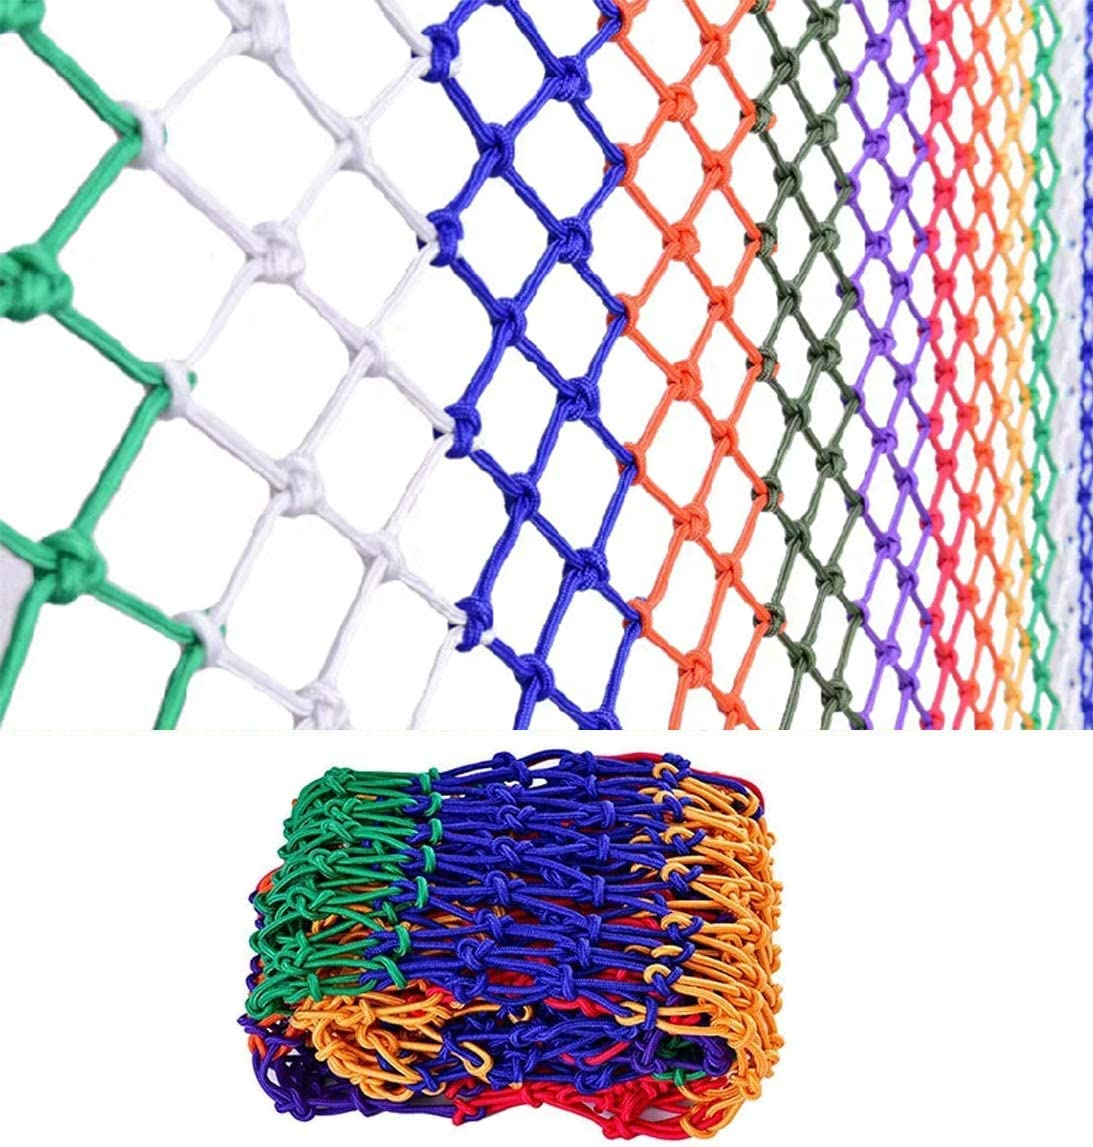 Rope Net Children Safety Playground - Don't unisex miss the campaign Protection Cargo